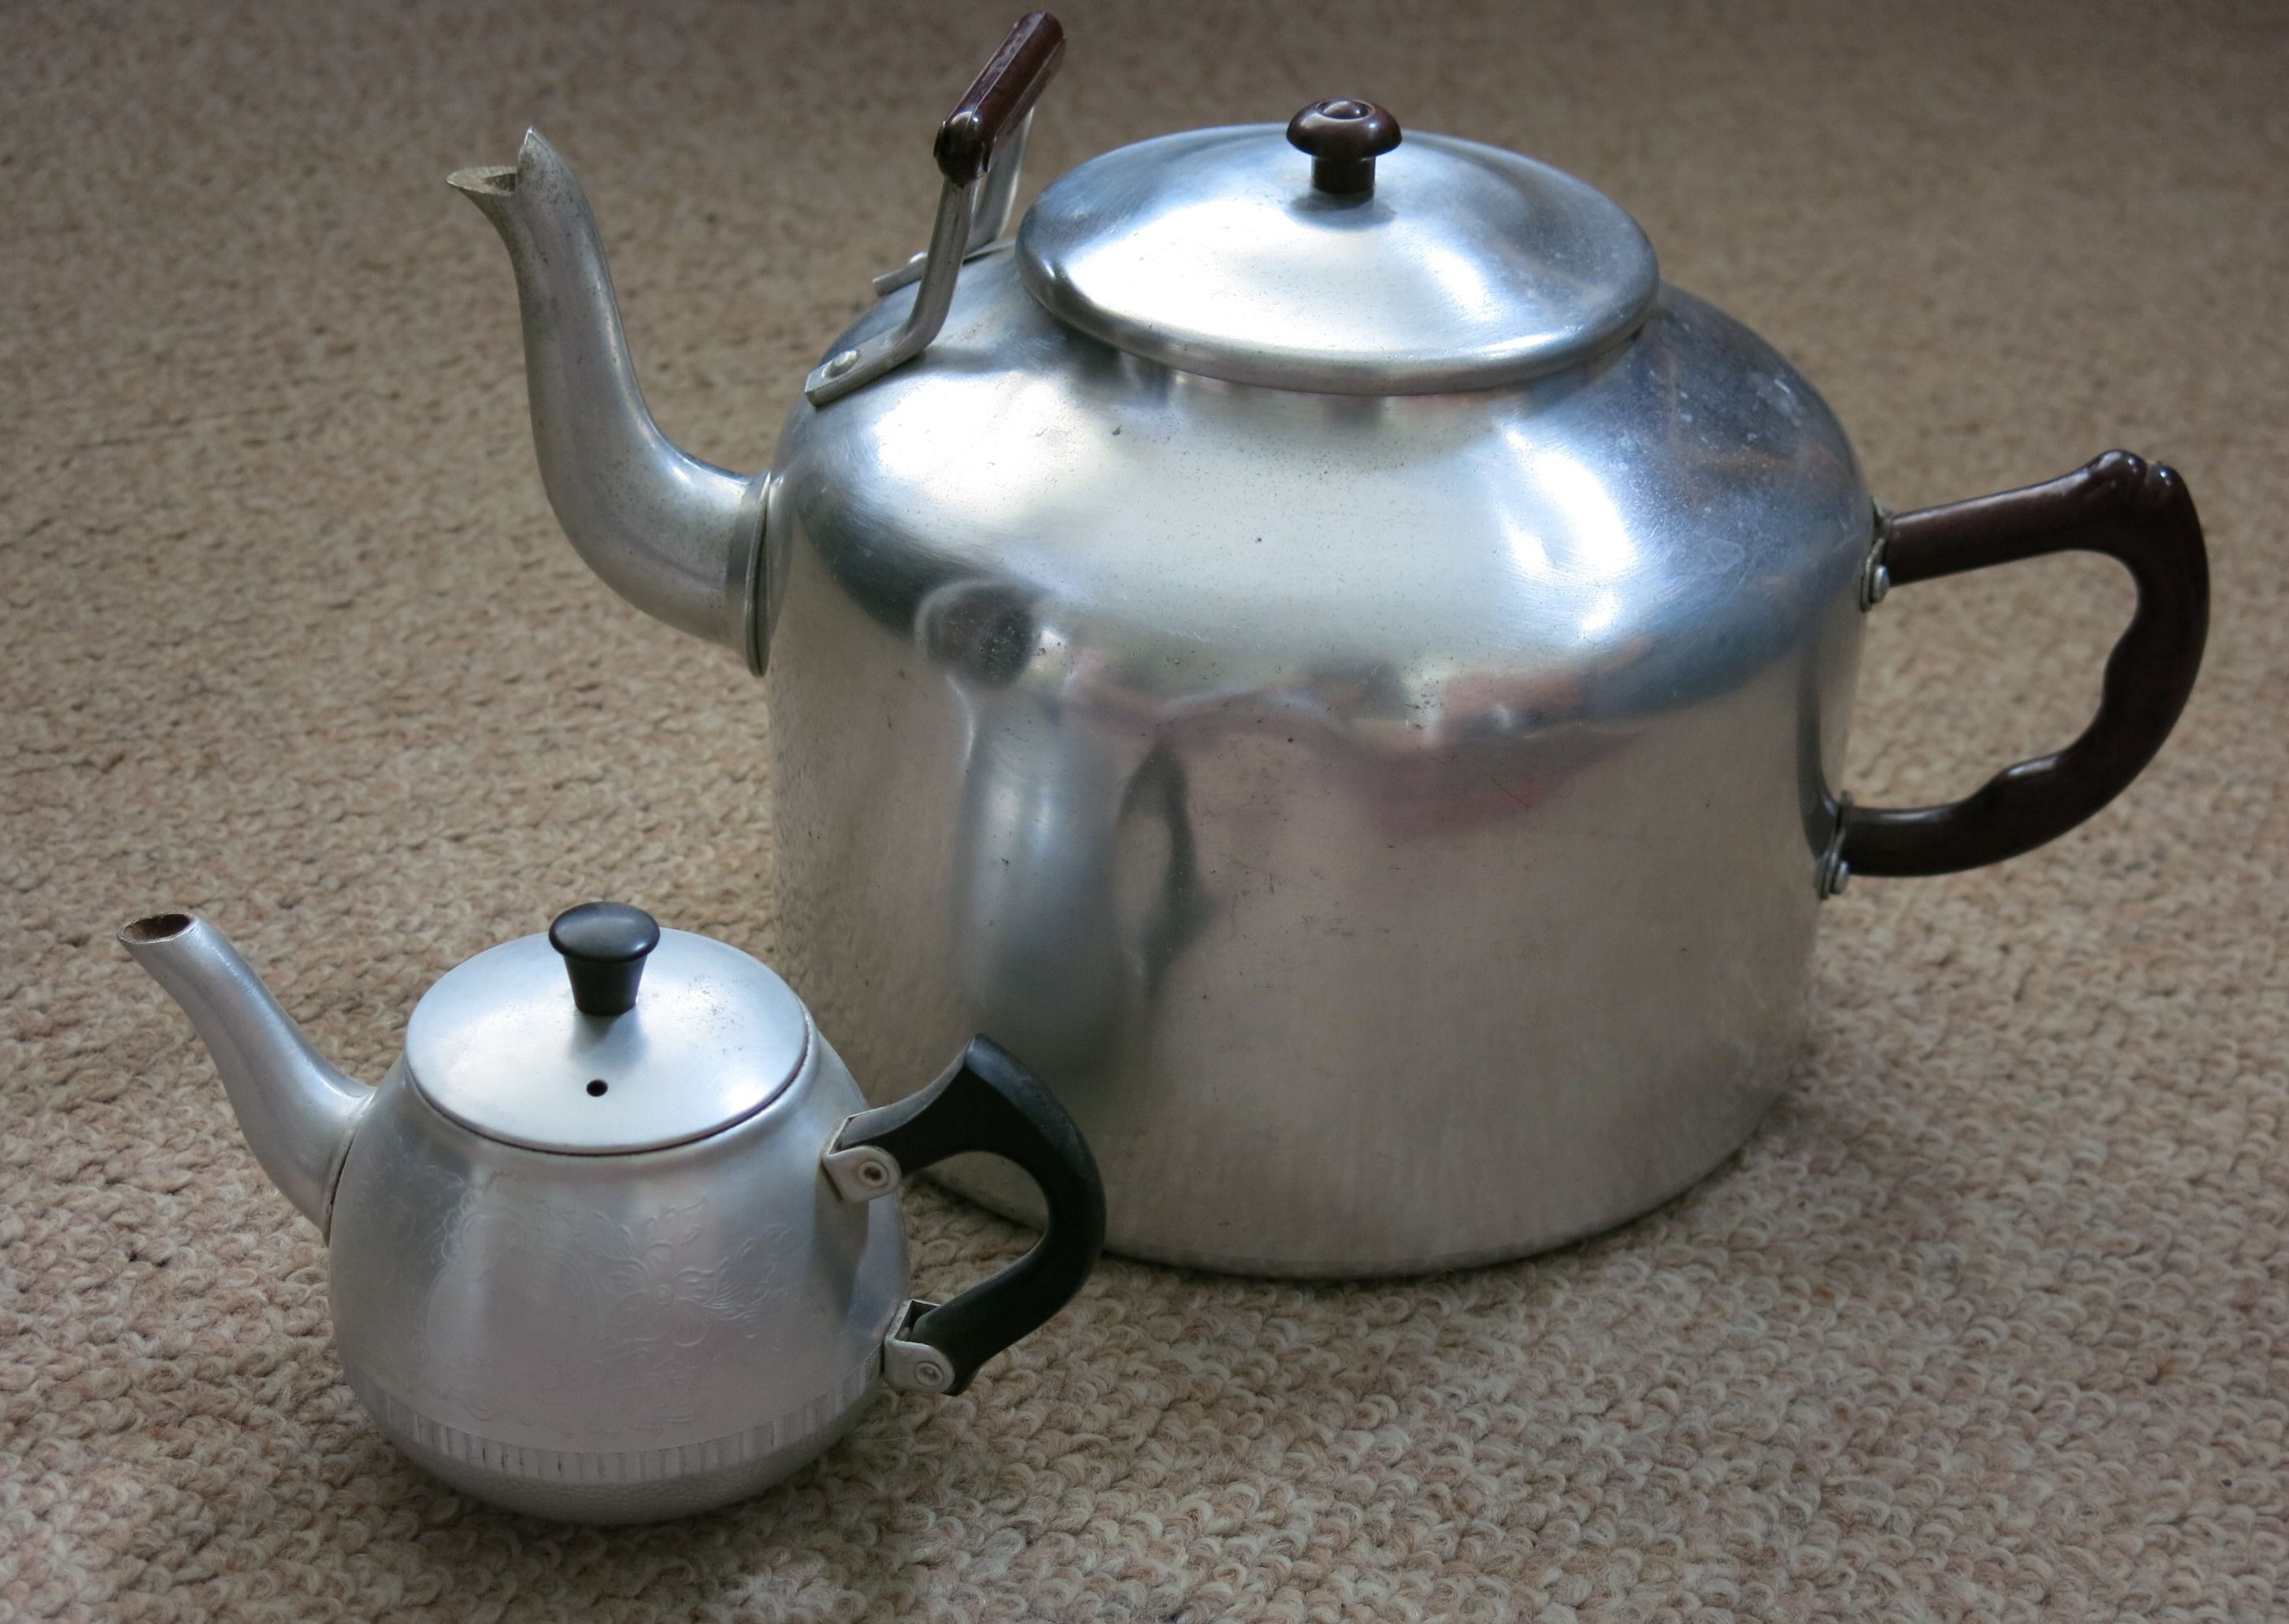 Large Approx 12 Cup Tea Pot And A 1 Cup Tea Pots Old Things Tea